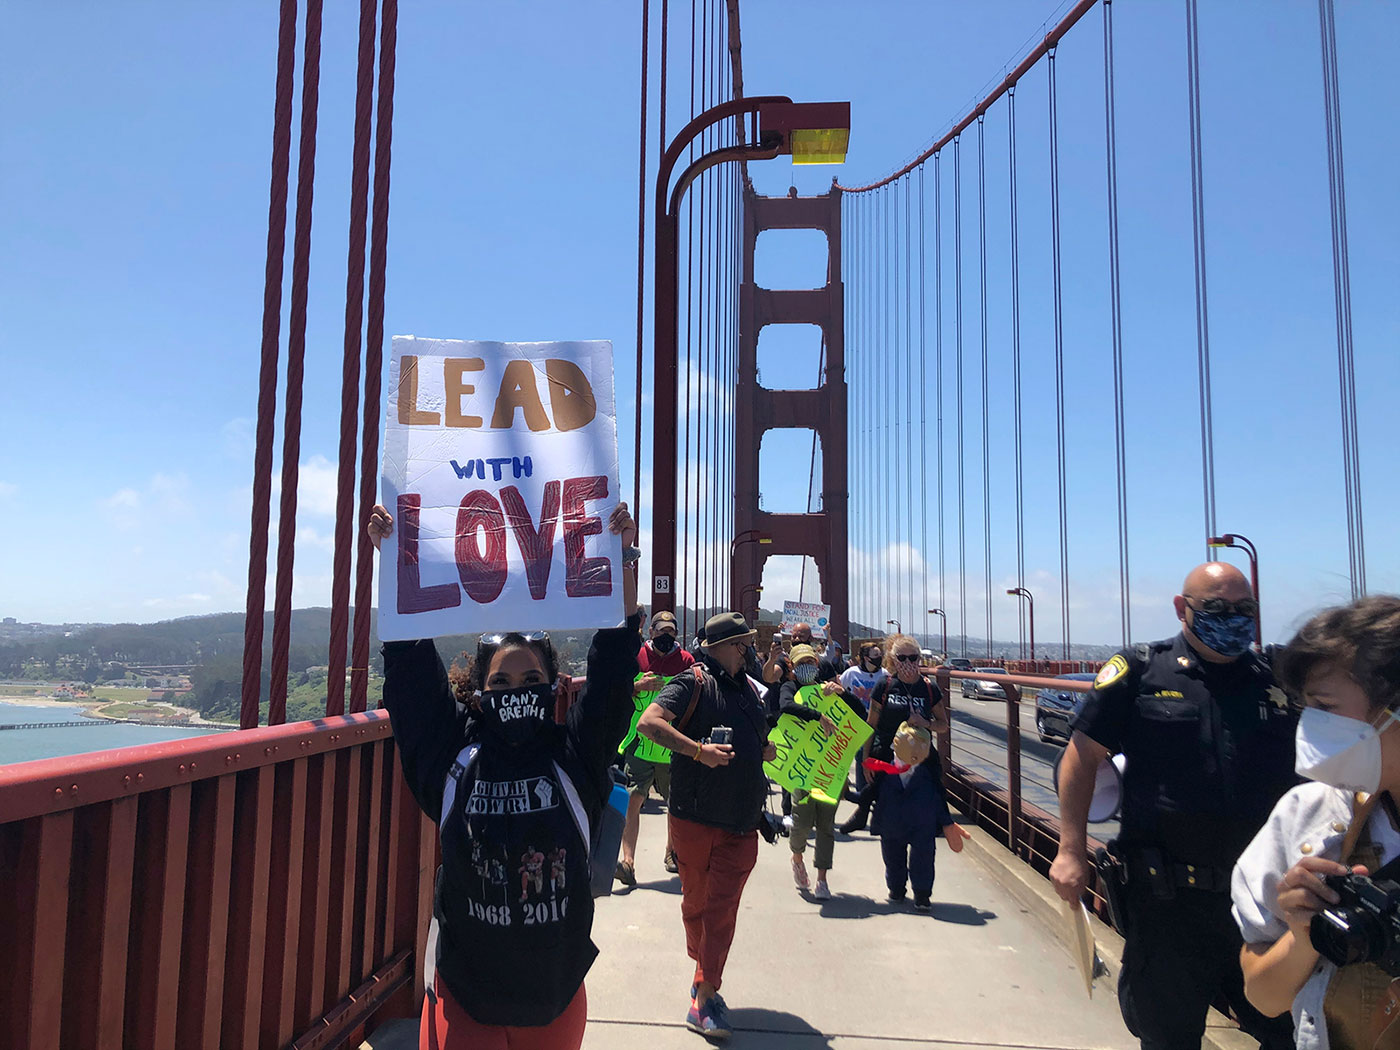 Dozens of people march across the Golden Gate Bridge in San Francisco in support of the Black Lives Matter movement on June 6.